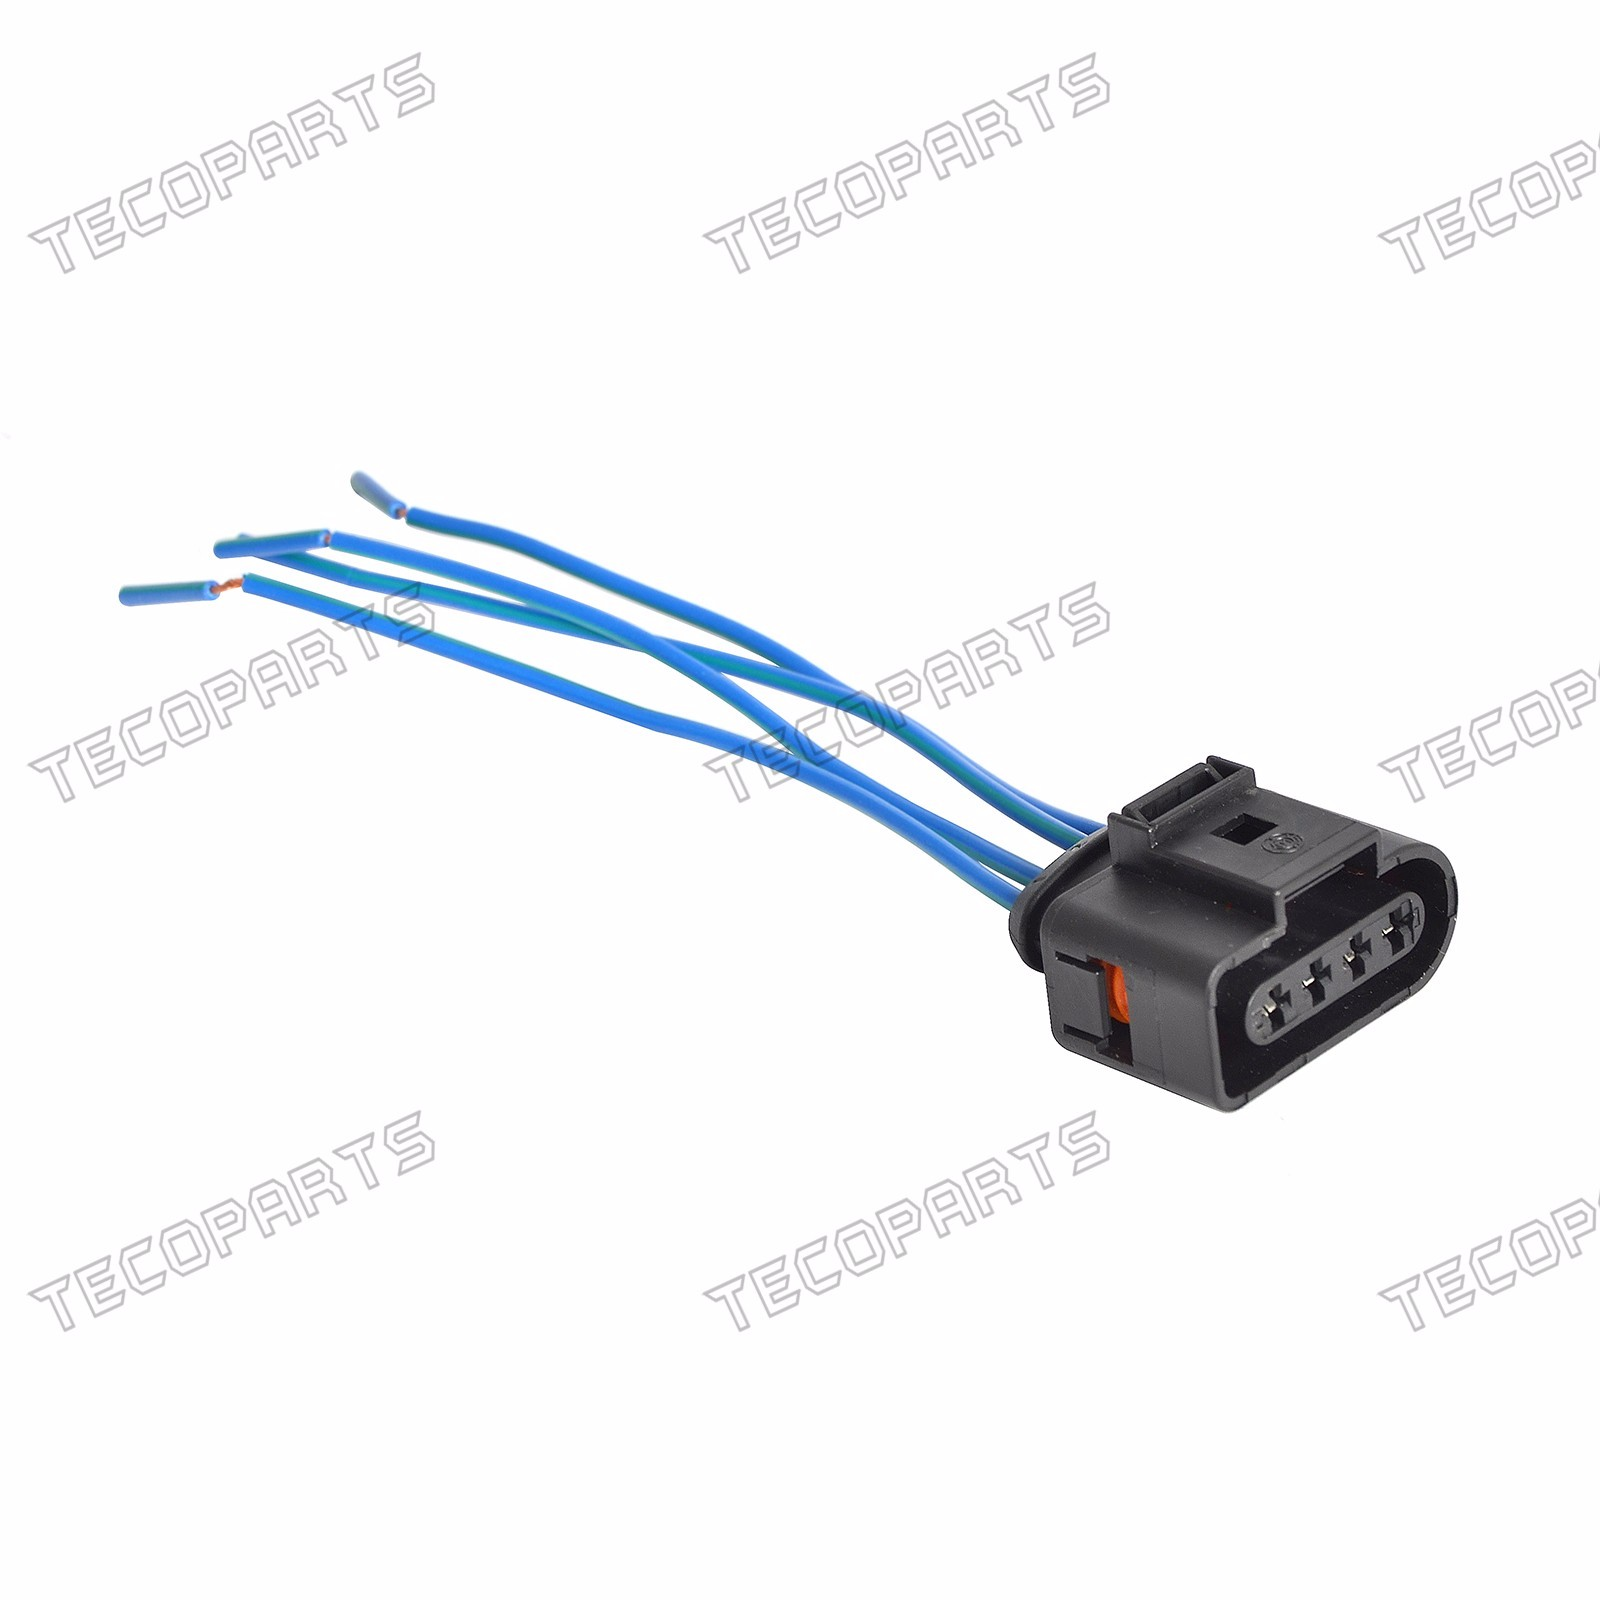 te pr024_(2) new set 4 ignition coil wiring harness connector repair kit for audi a4 1.8t ignition coil wiring harness at nearapp.co